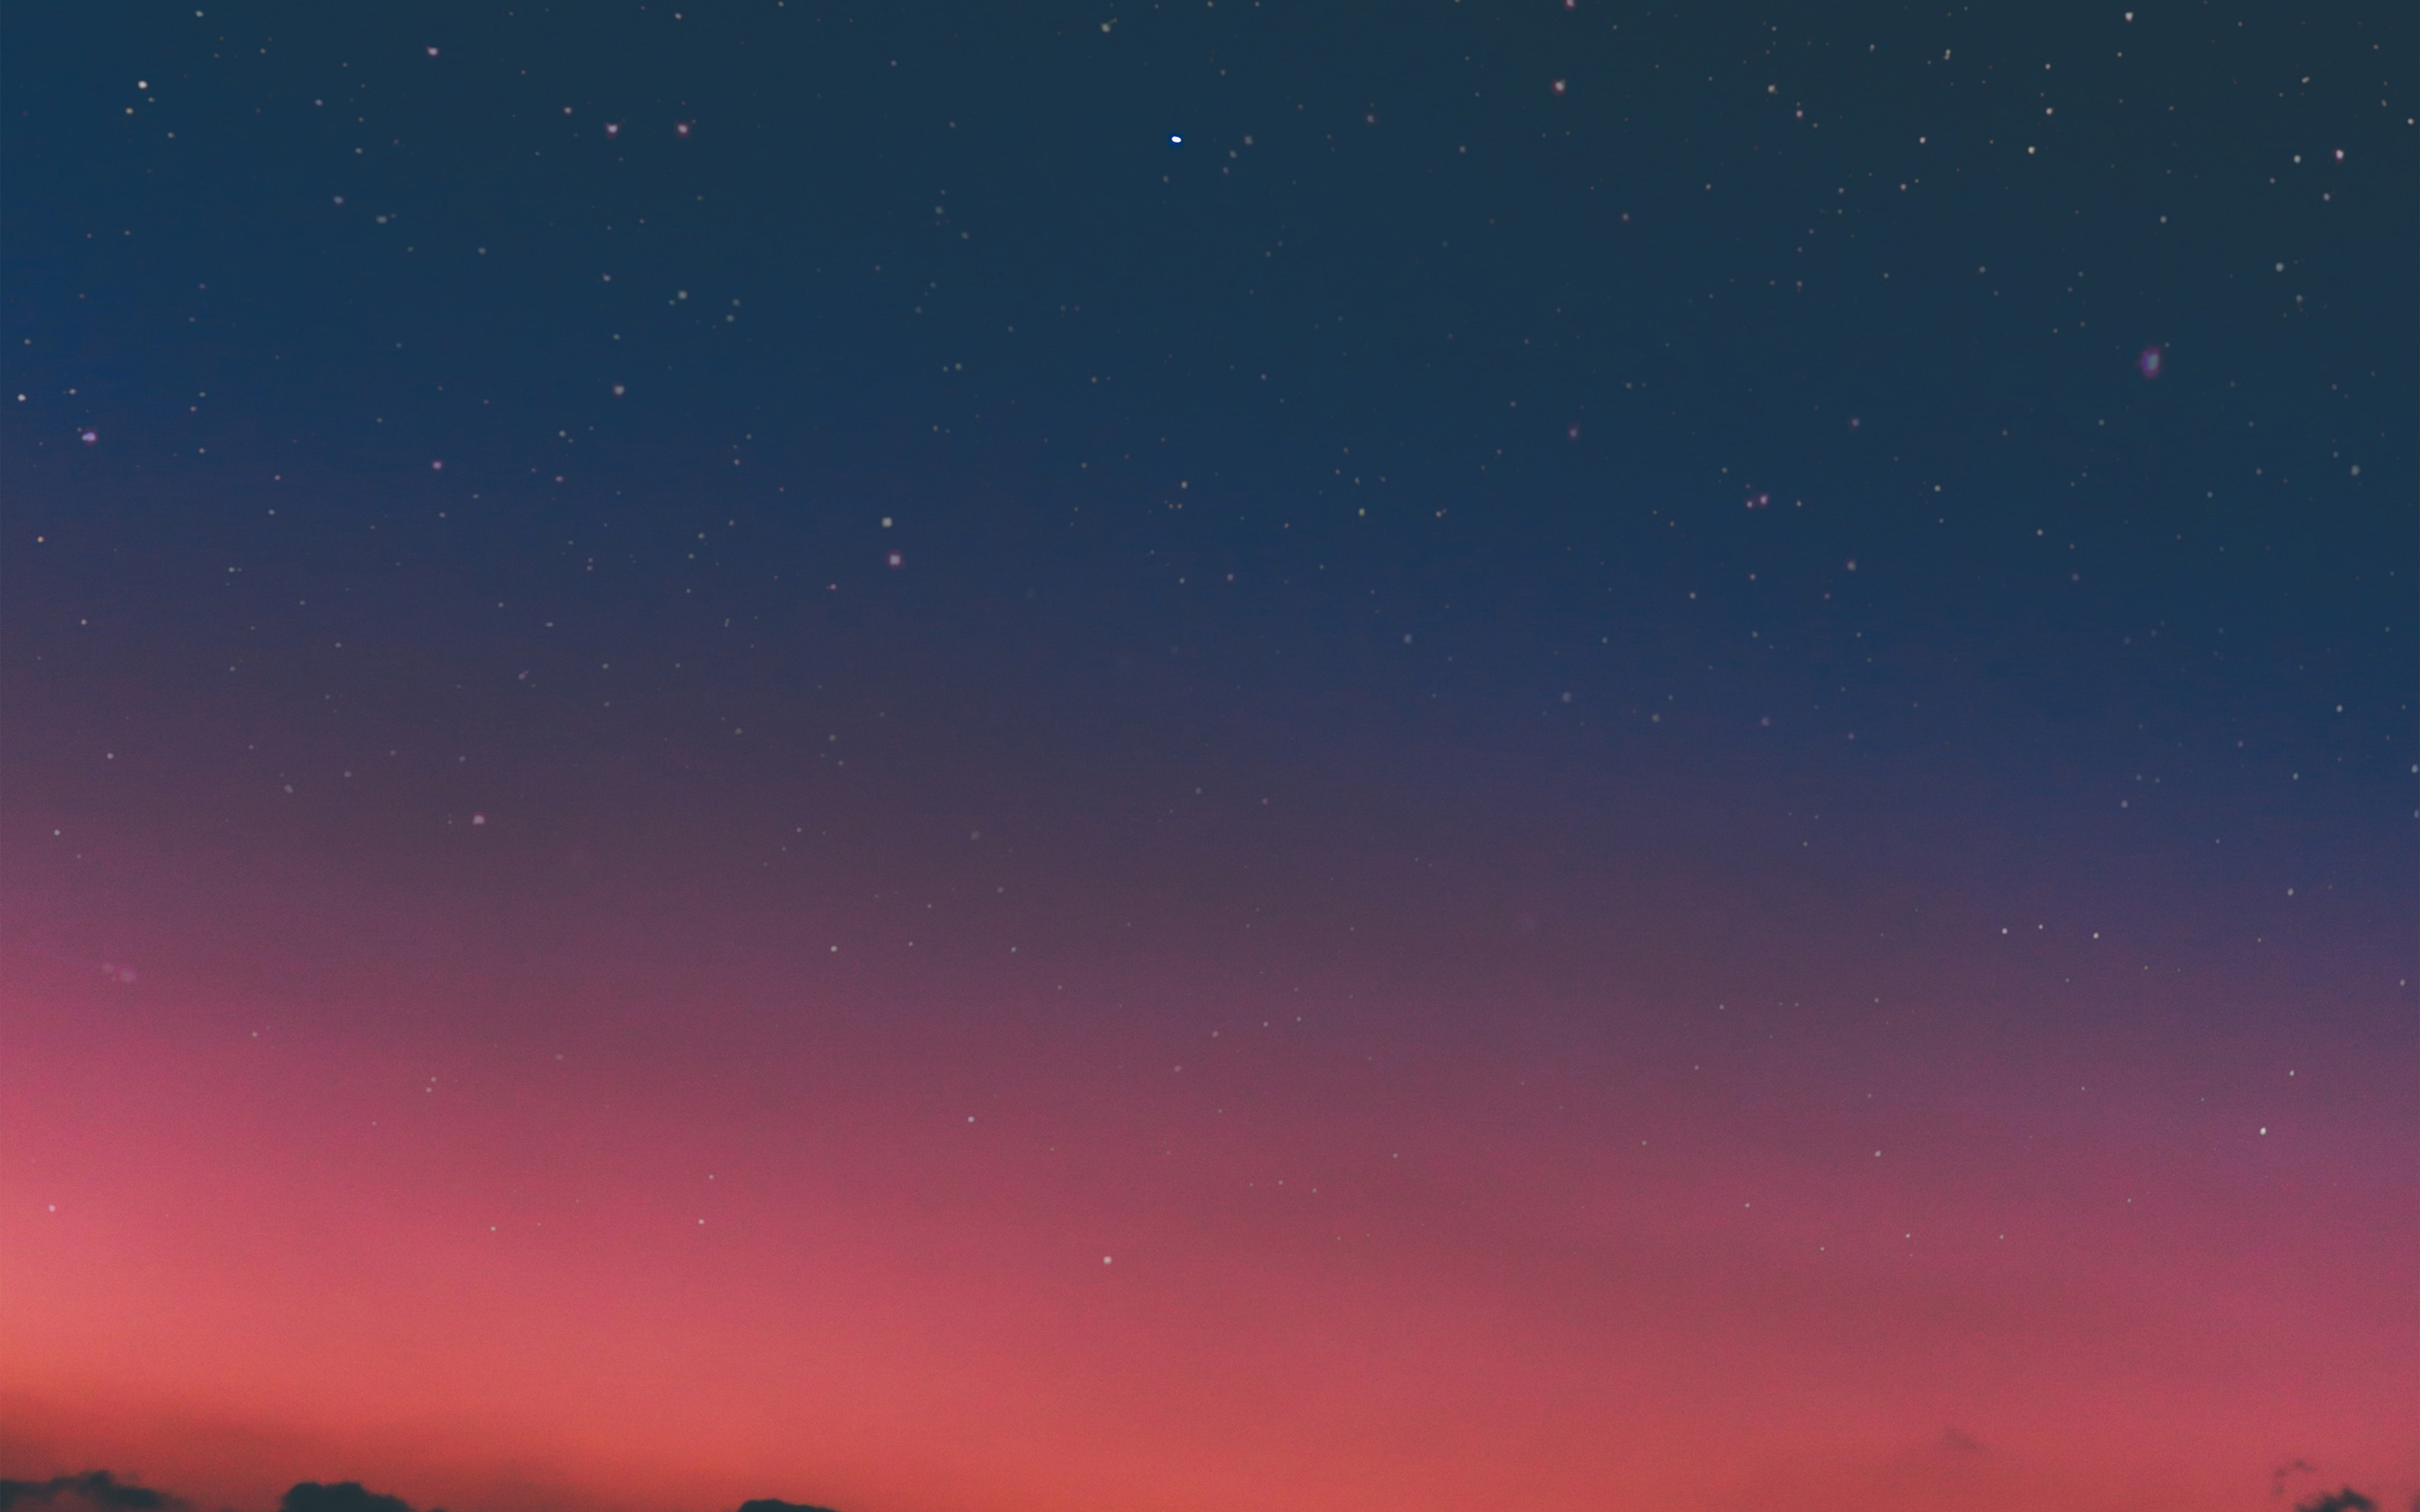 Classic Fall Wallpaper Ns23 Night Sky Sunset Pink Nature Wallpaper